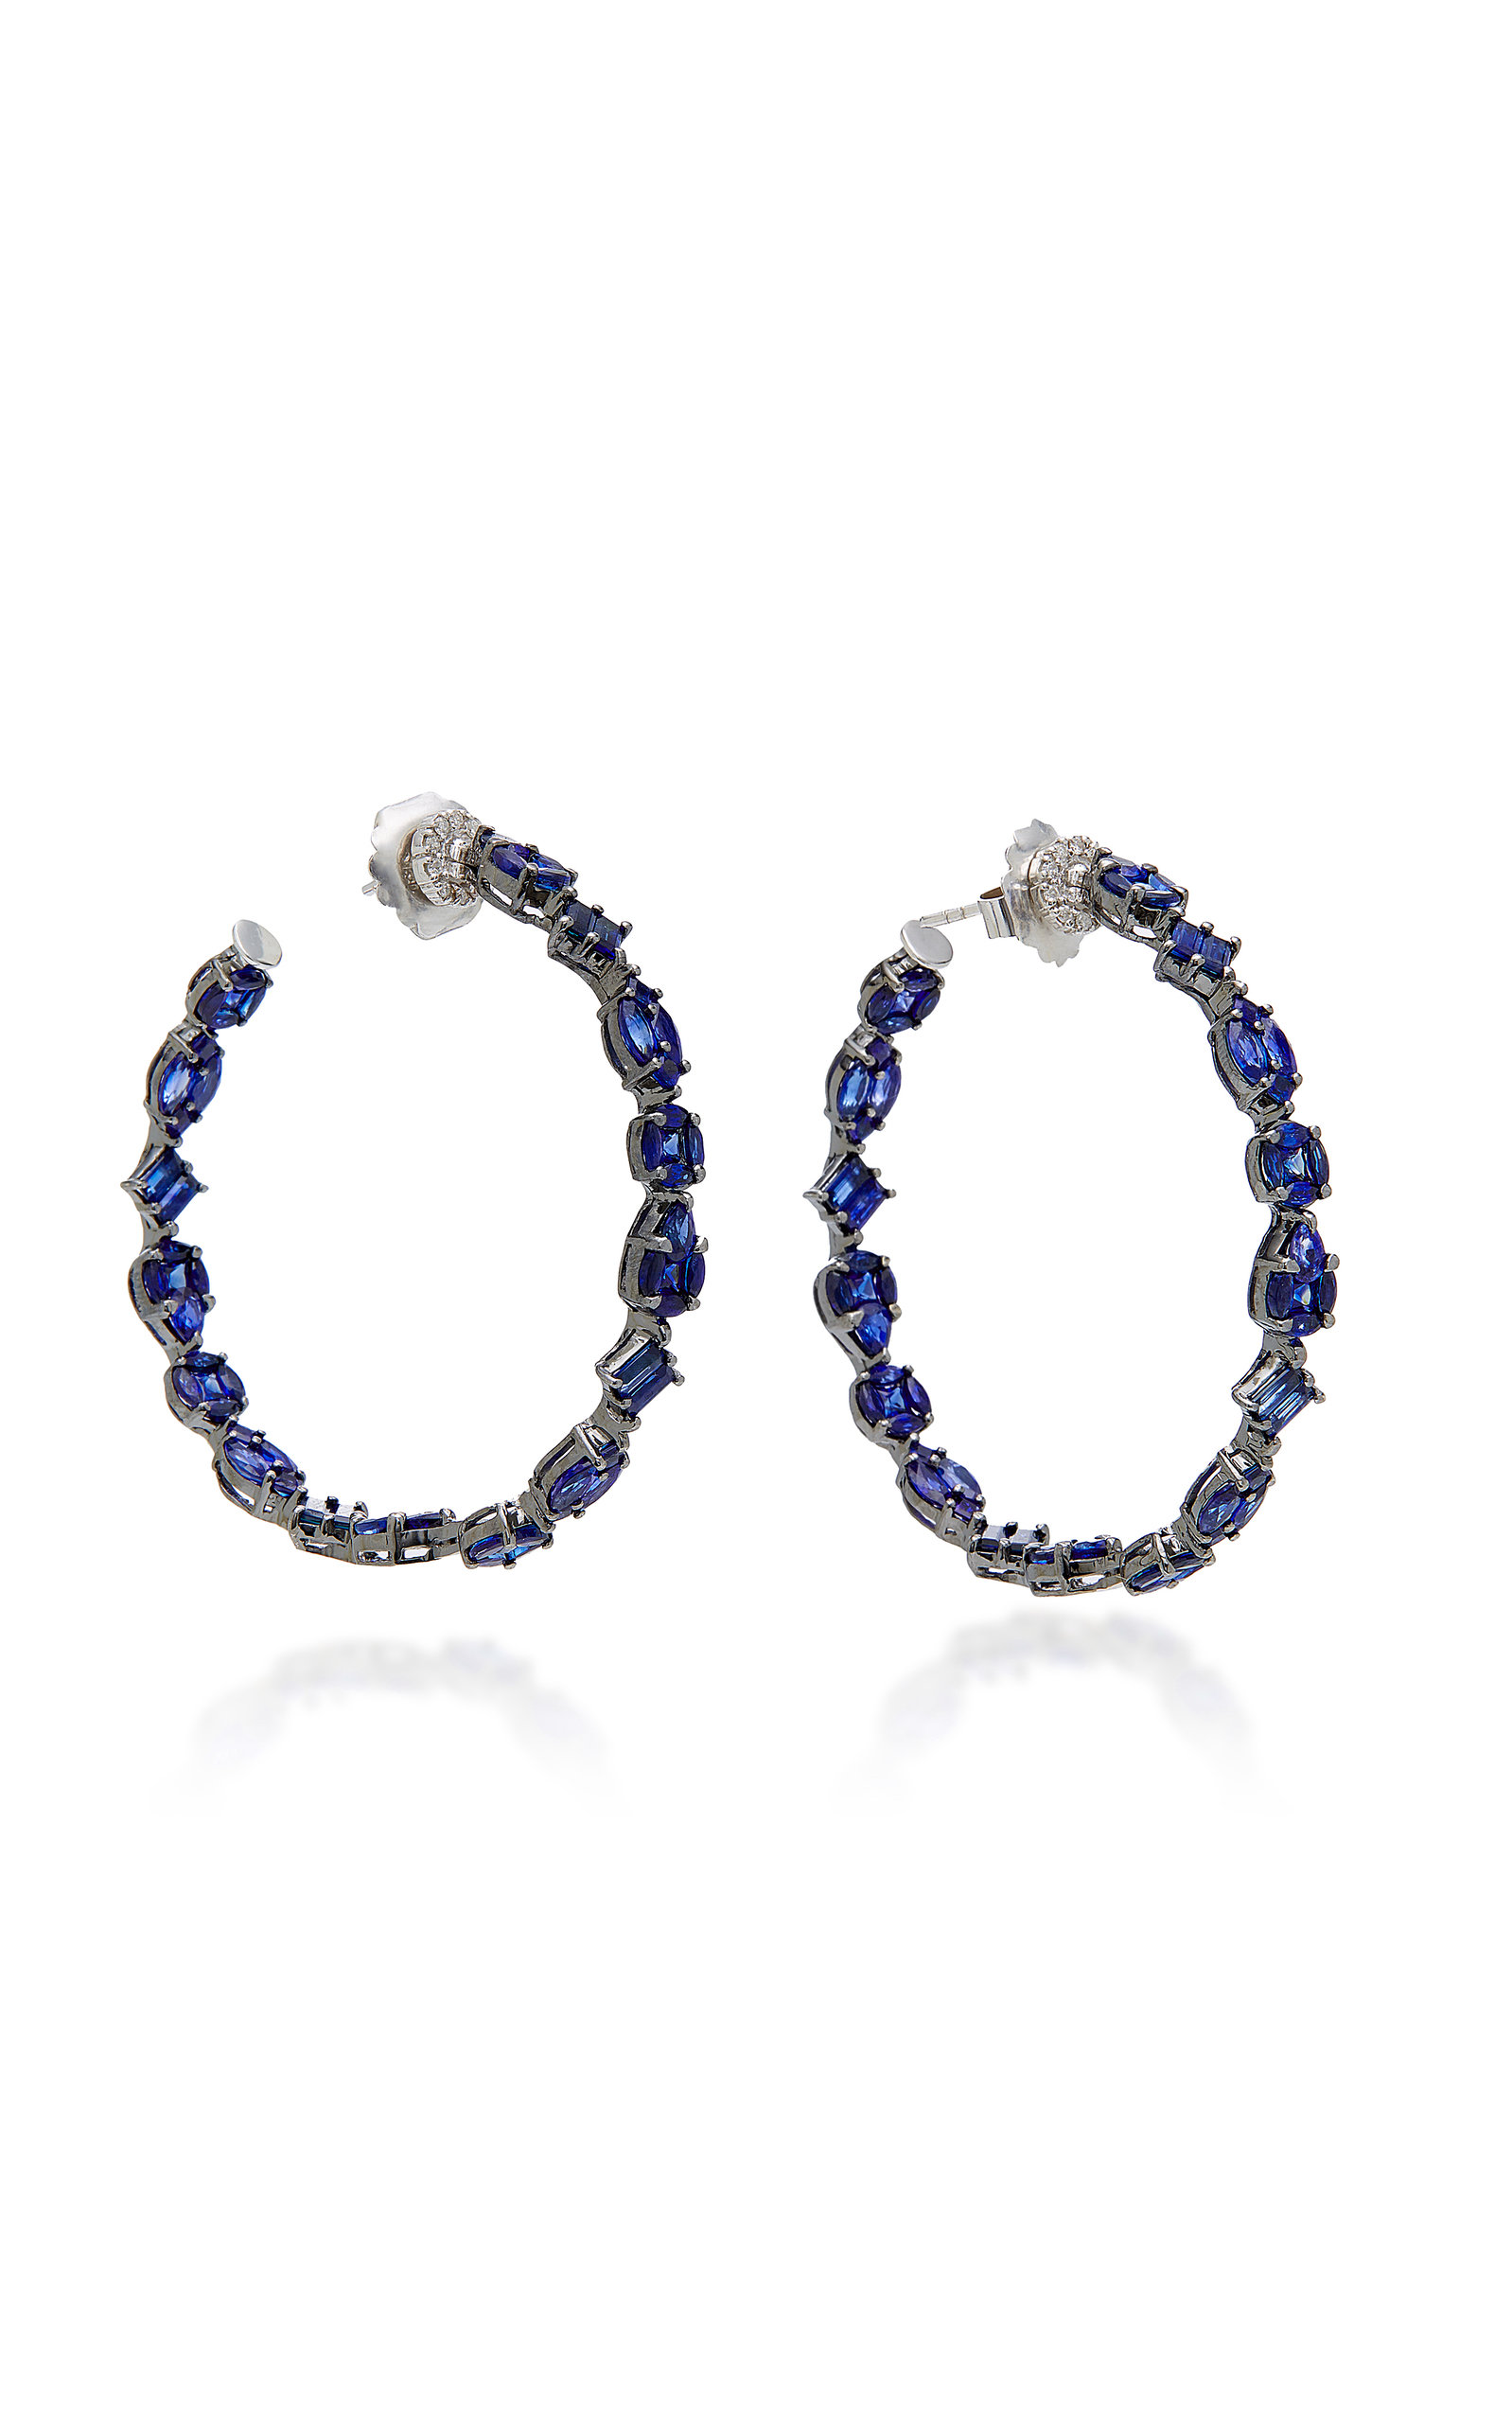 NAM CHO 18K WHITE GOLD RHODIUM-PLATED SAPPHIRE AND DIAMOND HOOP EARRINGS